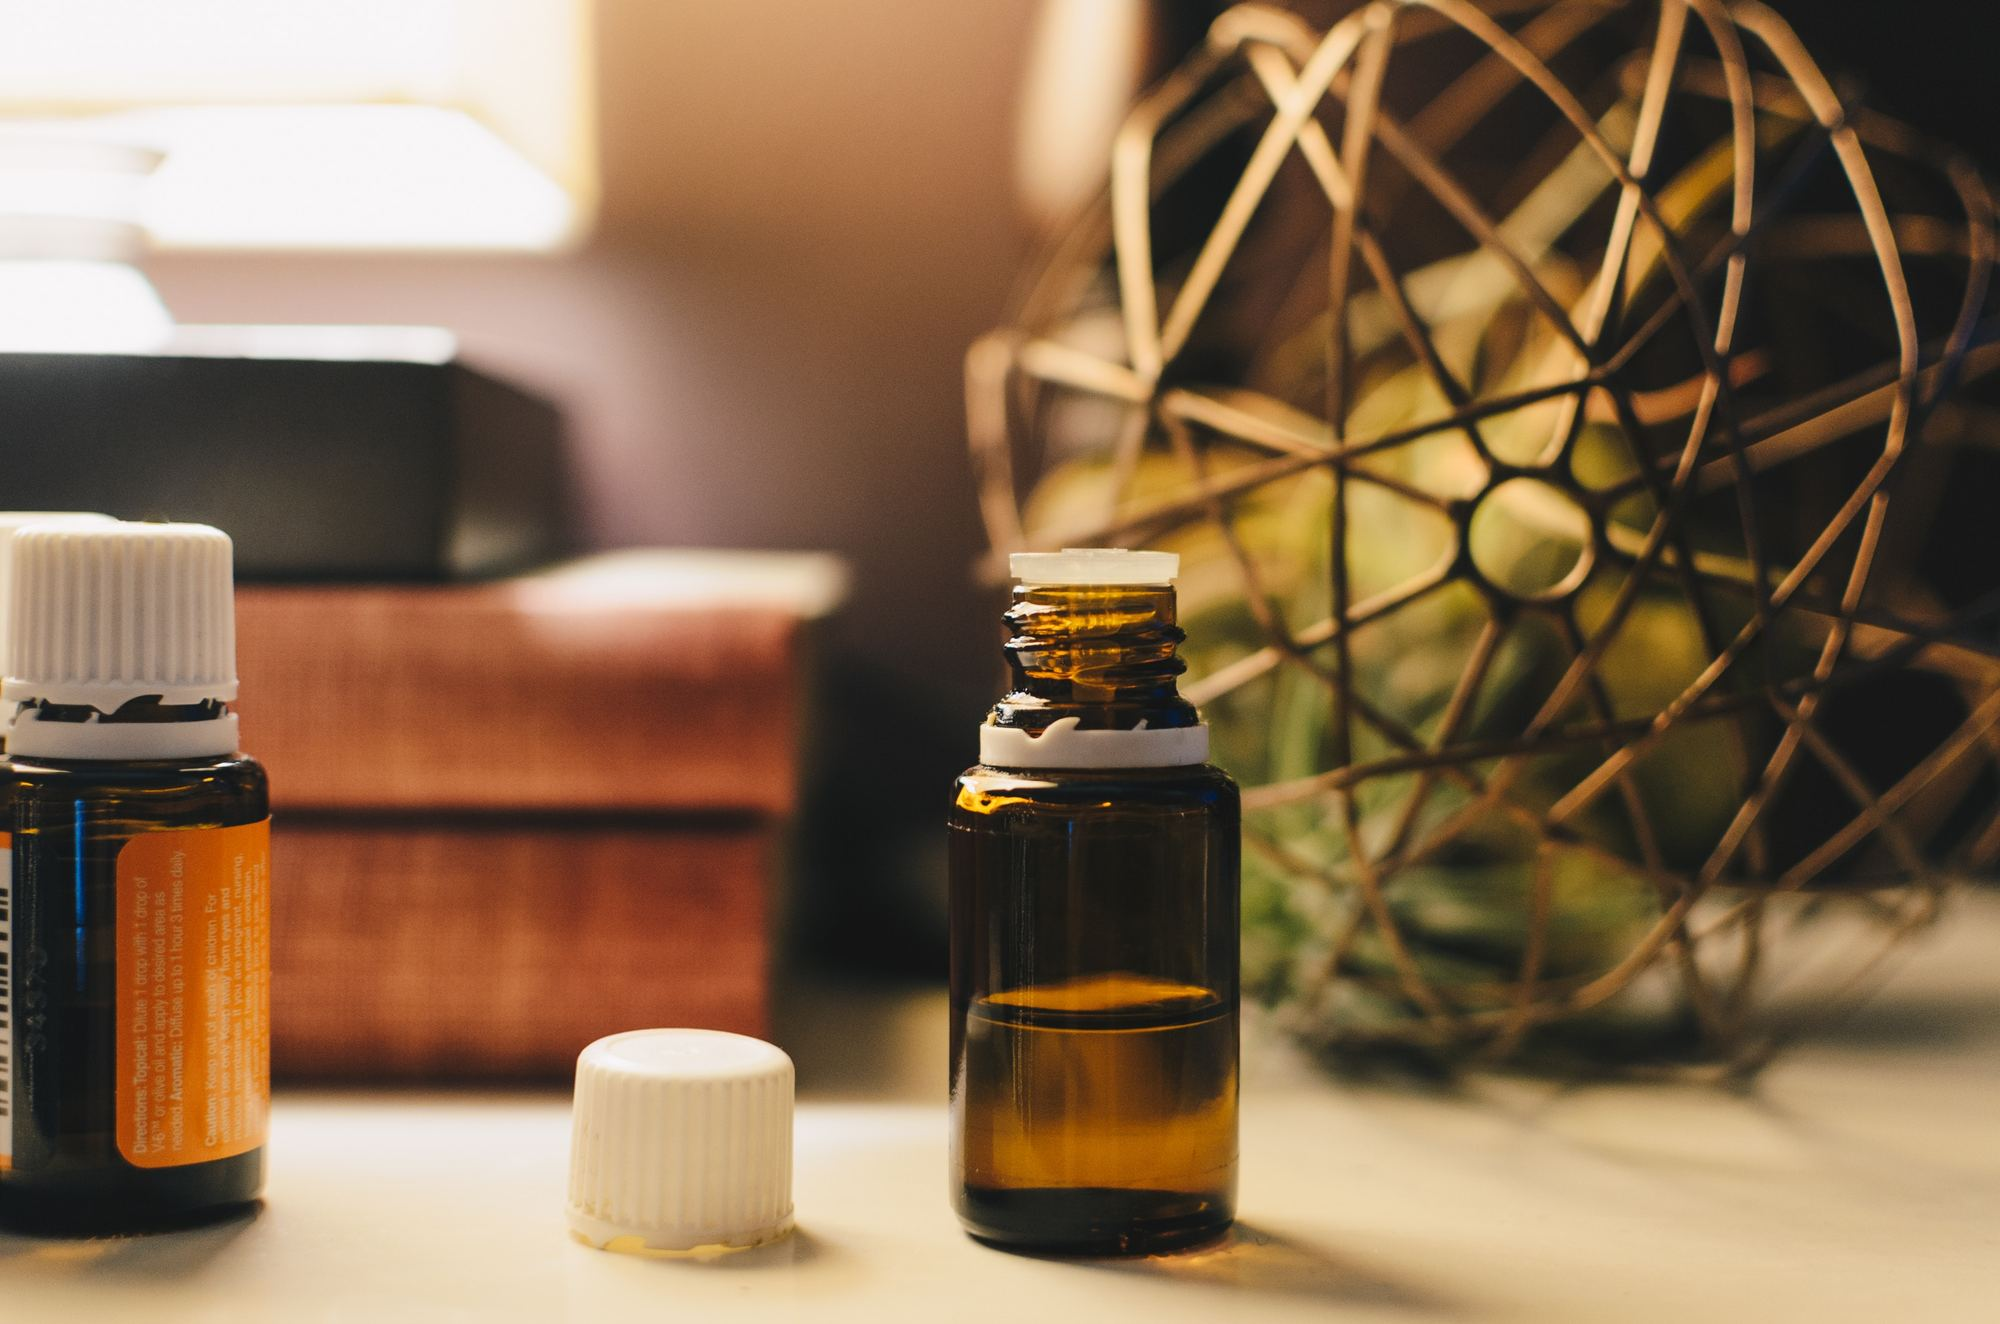 9 Weird Uses of CBD You Didn't Know